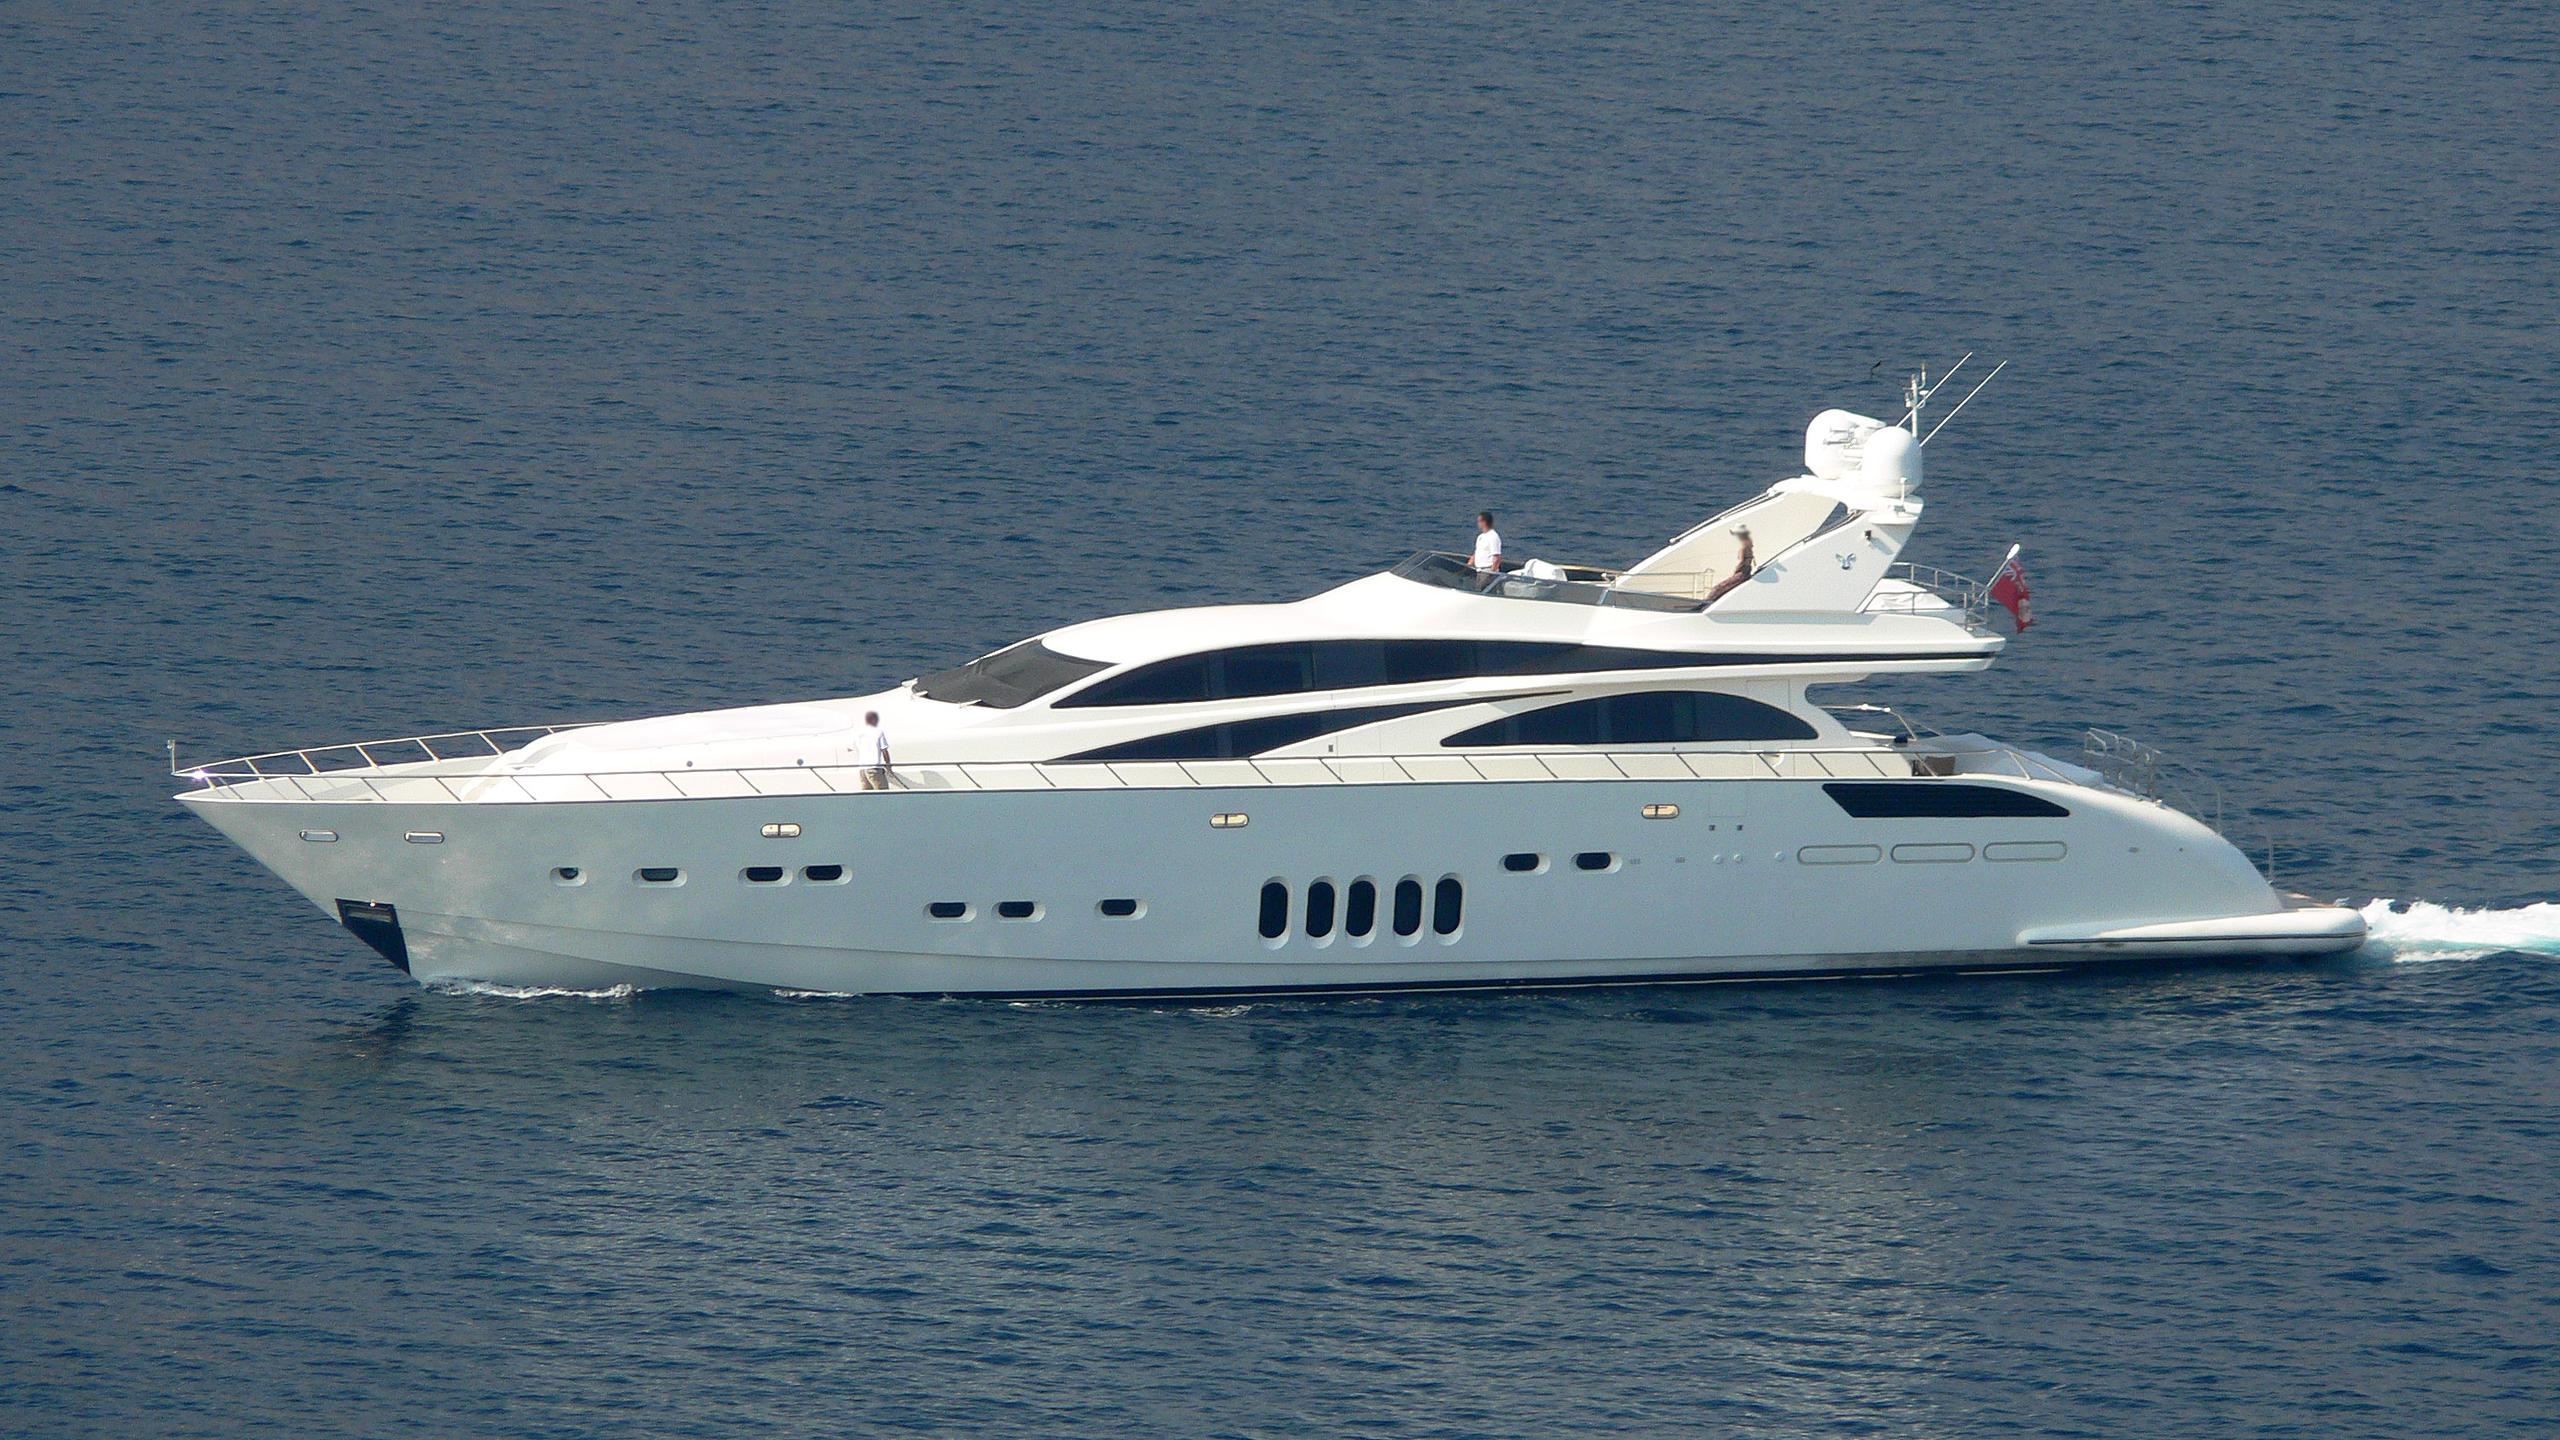 jade-mary-motor-yacht-arno-leopard-32-sport-2005-32m-profile